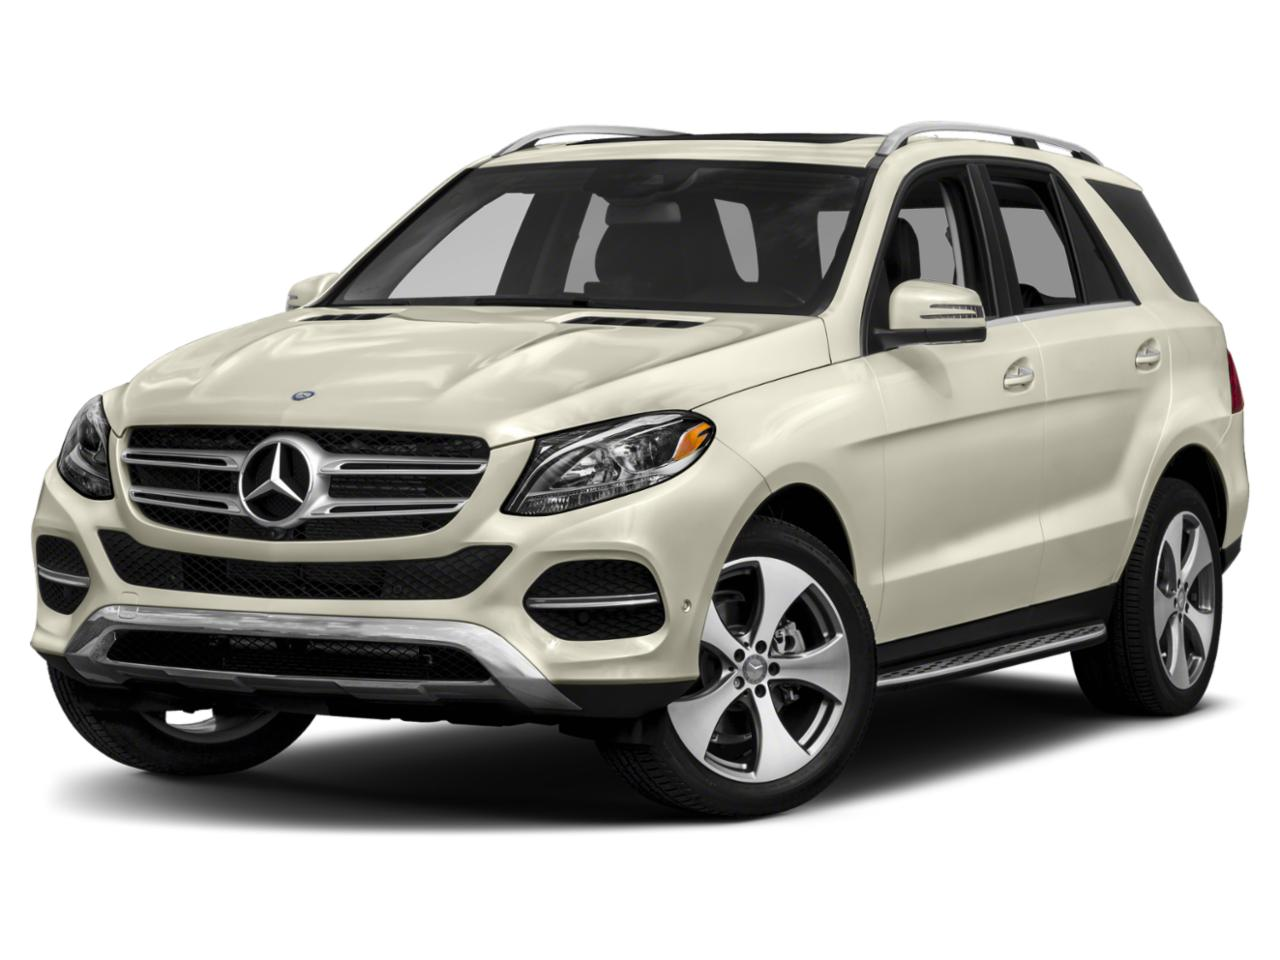 2018 Mercedes-Benz GLE Vehicle Photo in Willow Grove, PA 19090